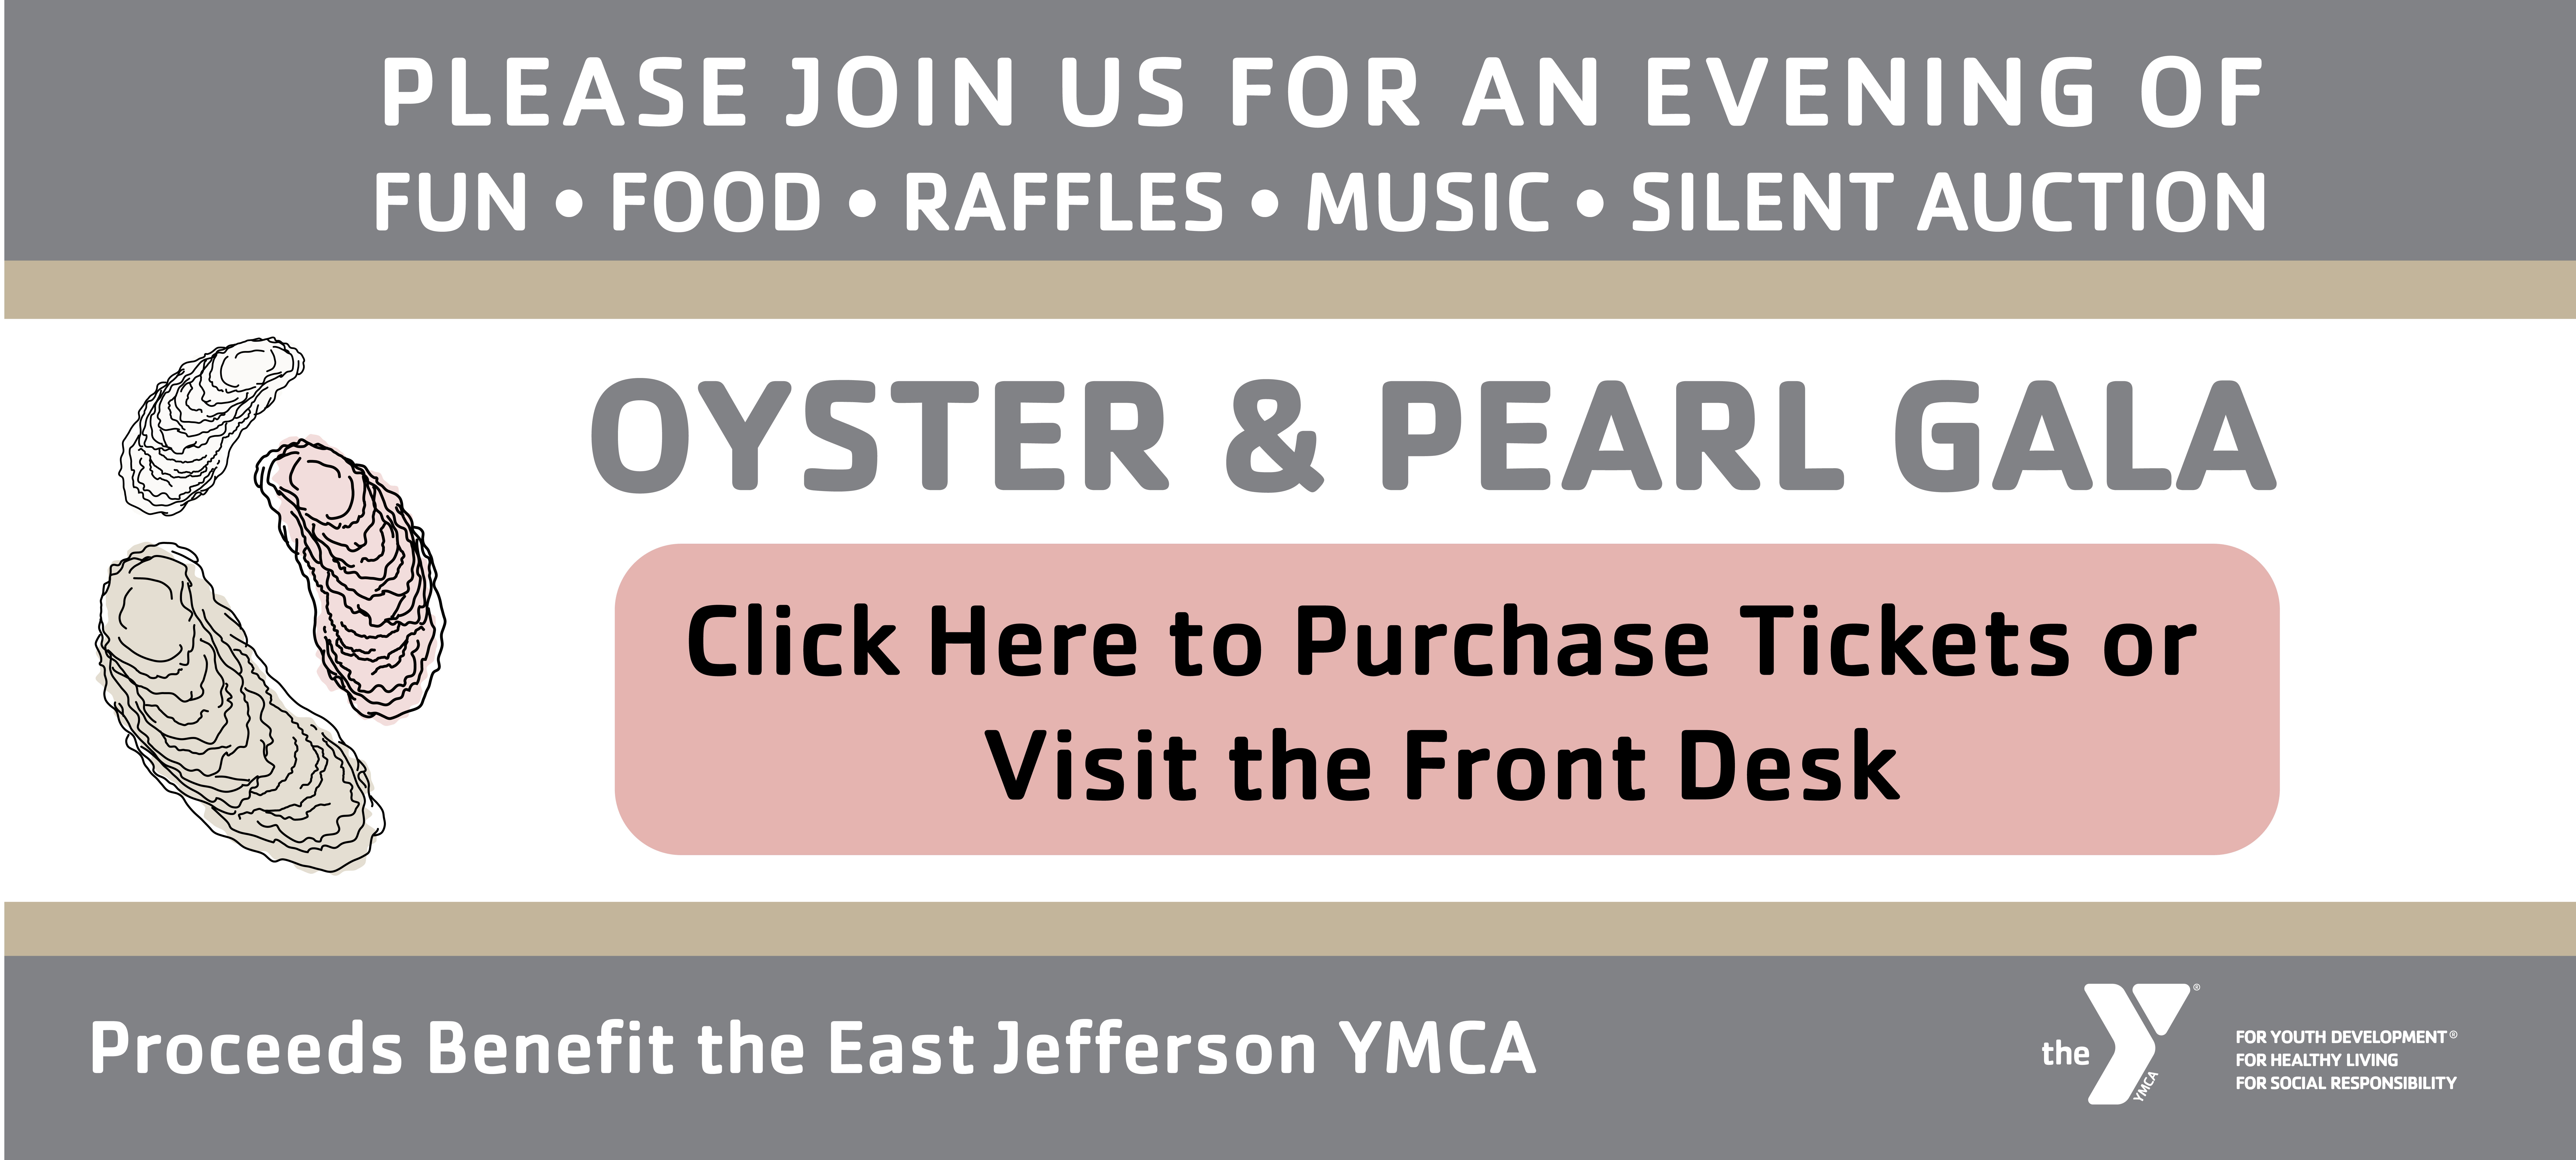 East Jefferson YMCA - YMCA of Greater New Orleans